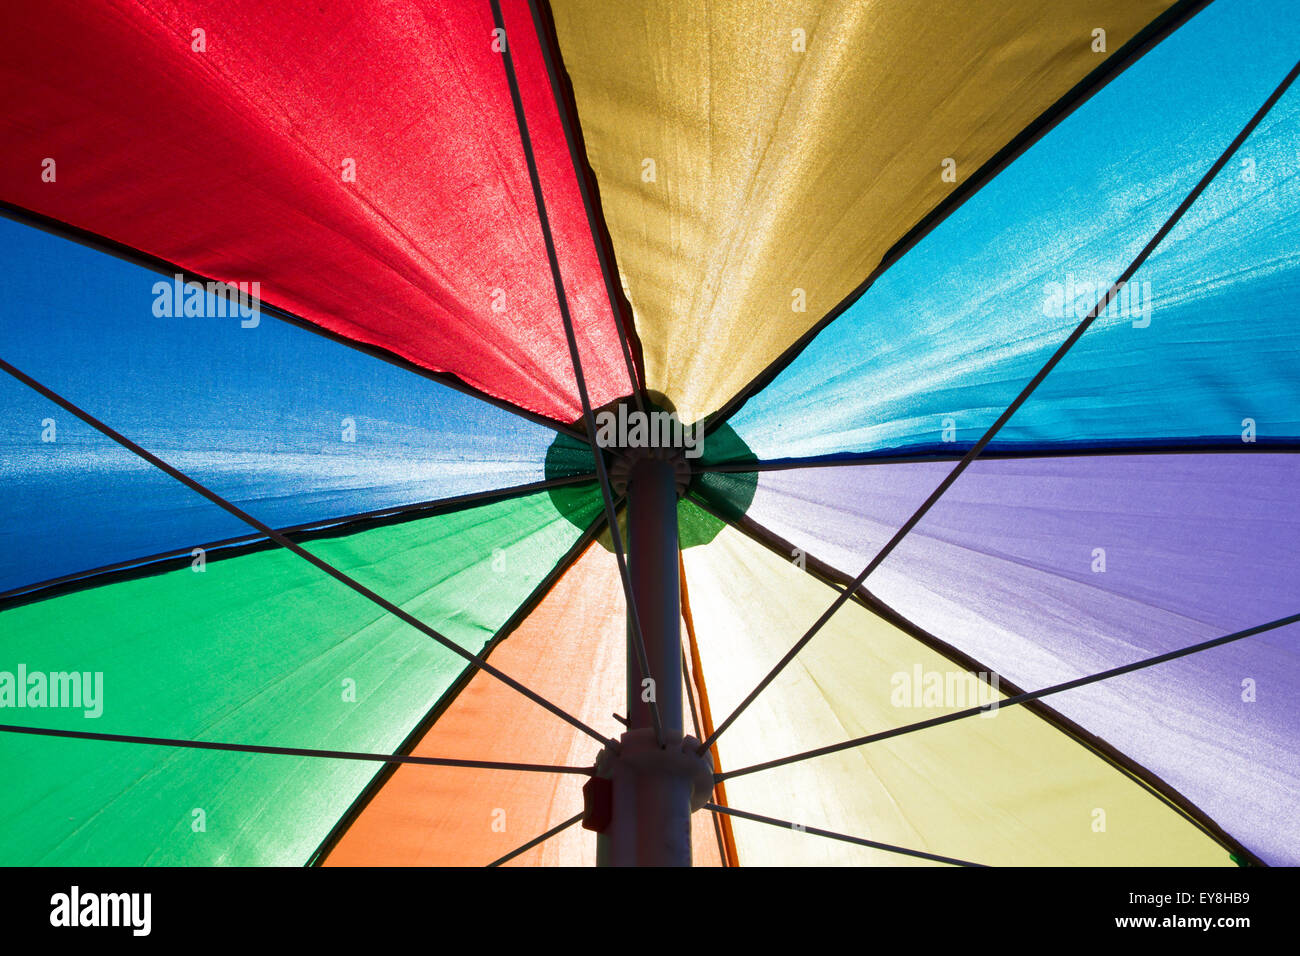 A Colorful Rainbow Colored Beach Umbrella Seen From Below